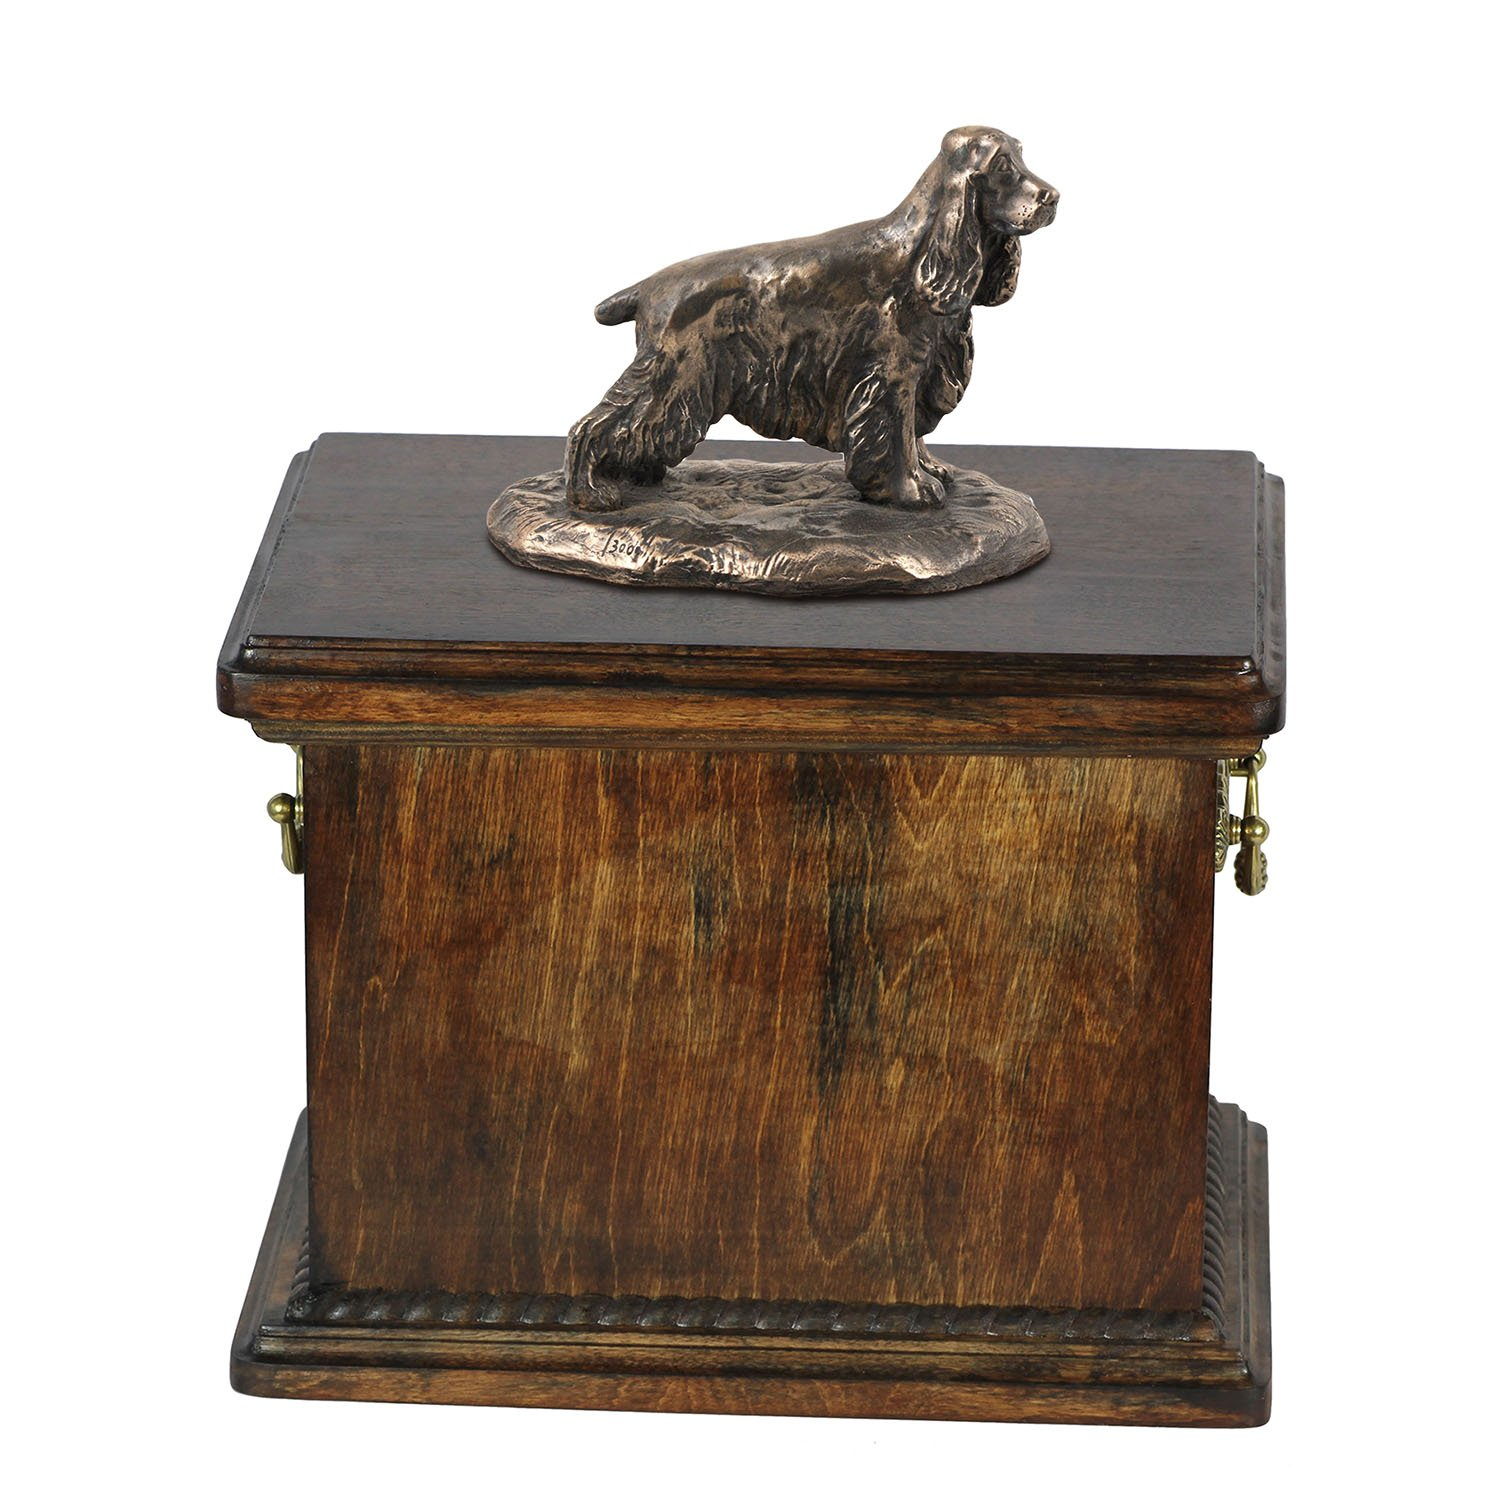 English Cocker Spaniel, memorial, urn for dog's ashes, with dog statue, ArtDog